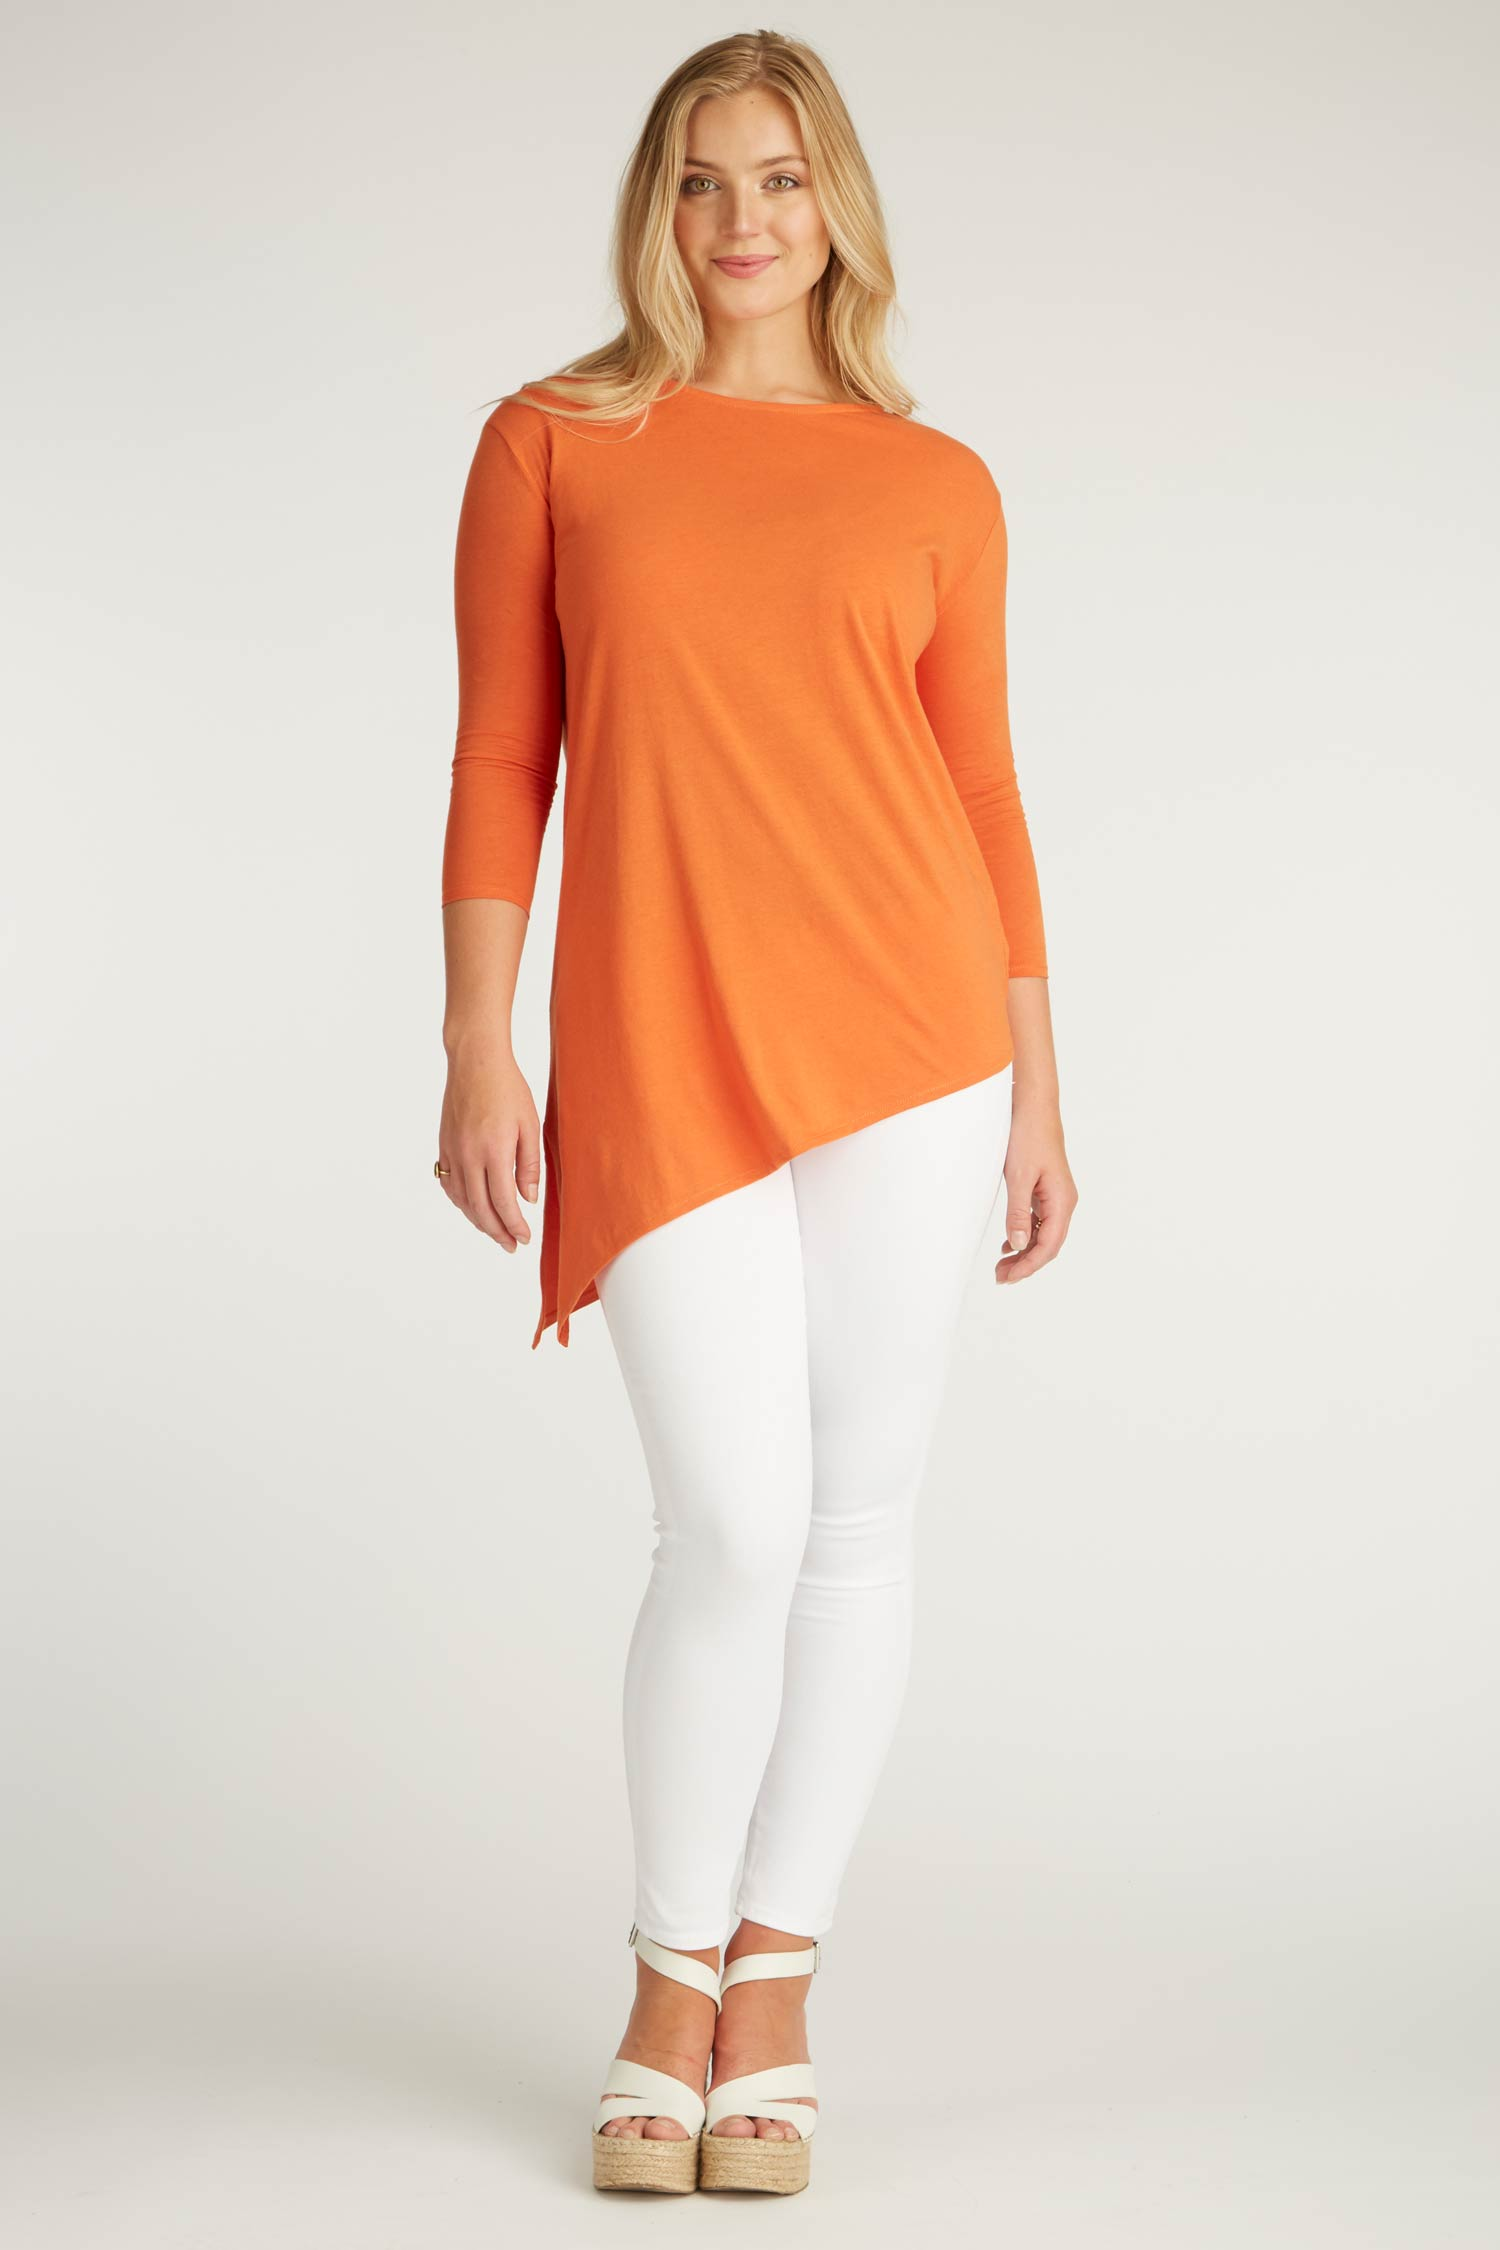 Womens Organic Cotton Top | Orange Asymmetrical Tunic | Indigenous